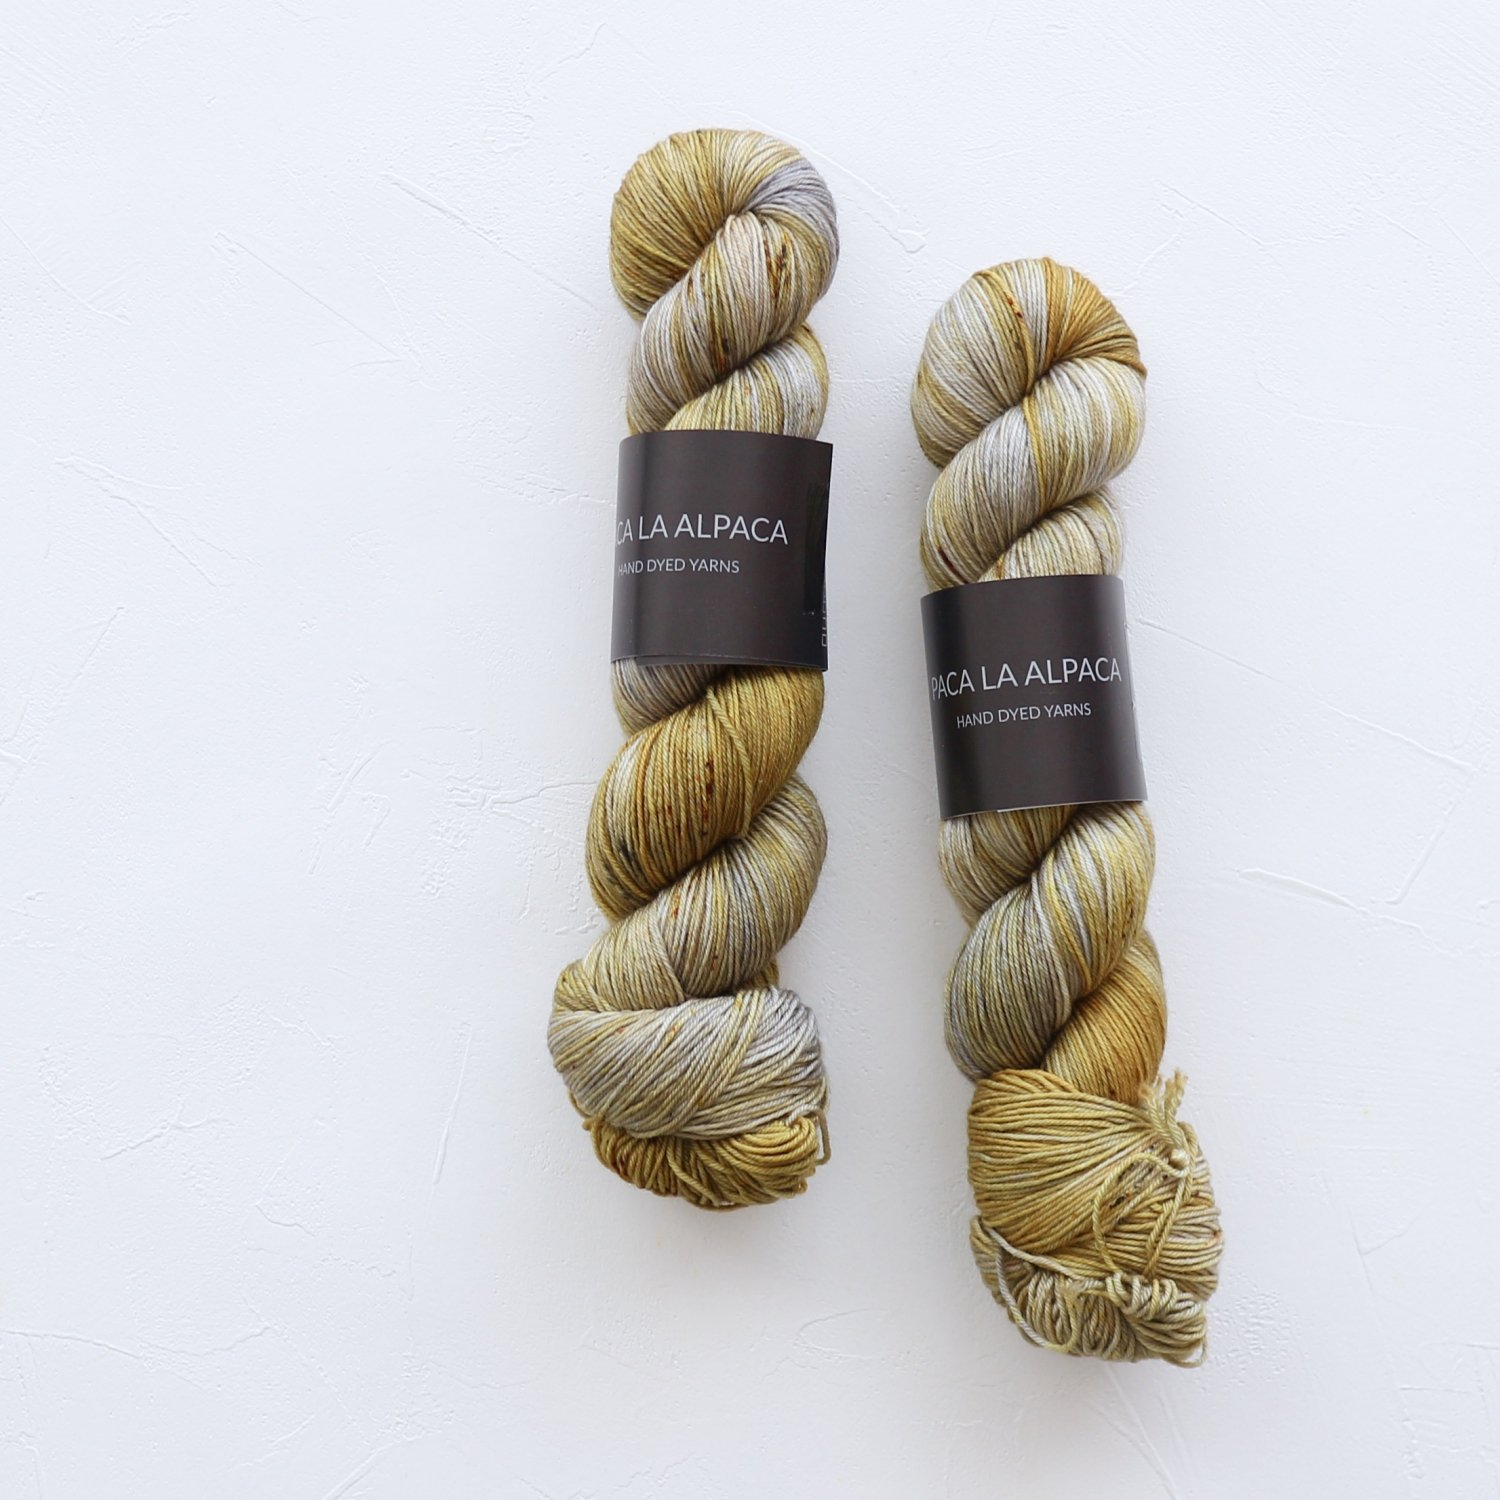 【Paca La Alpaca】<br>Superwash Merino Sock 4Ply<br>Silvered Gold